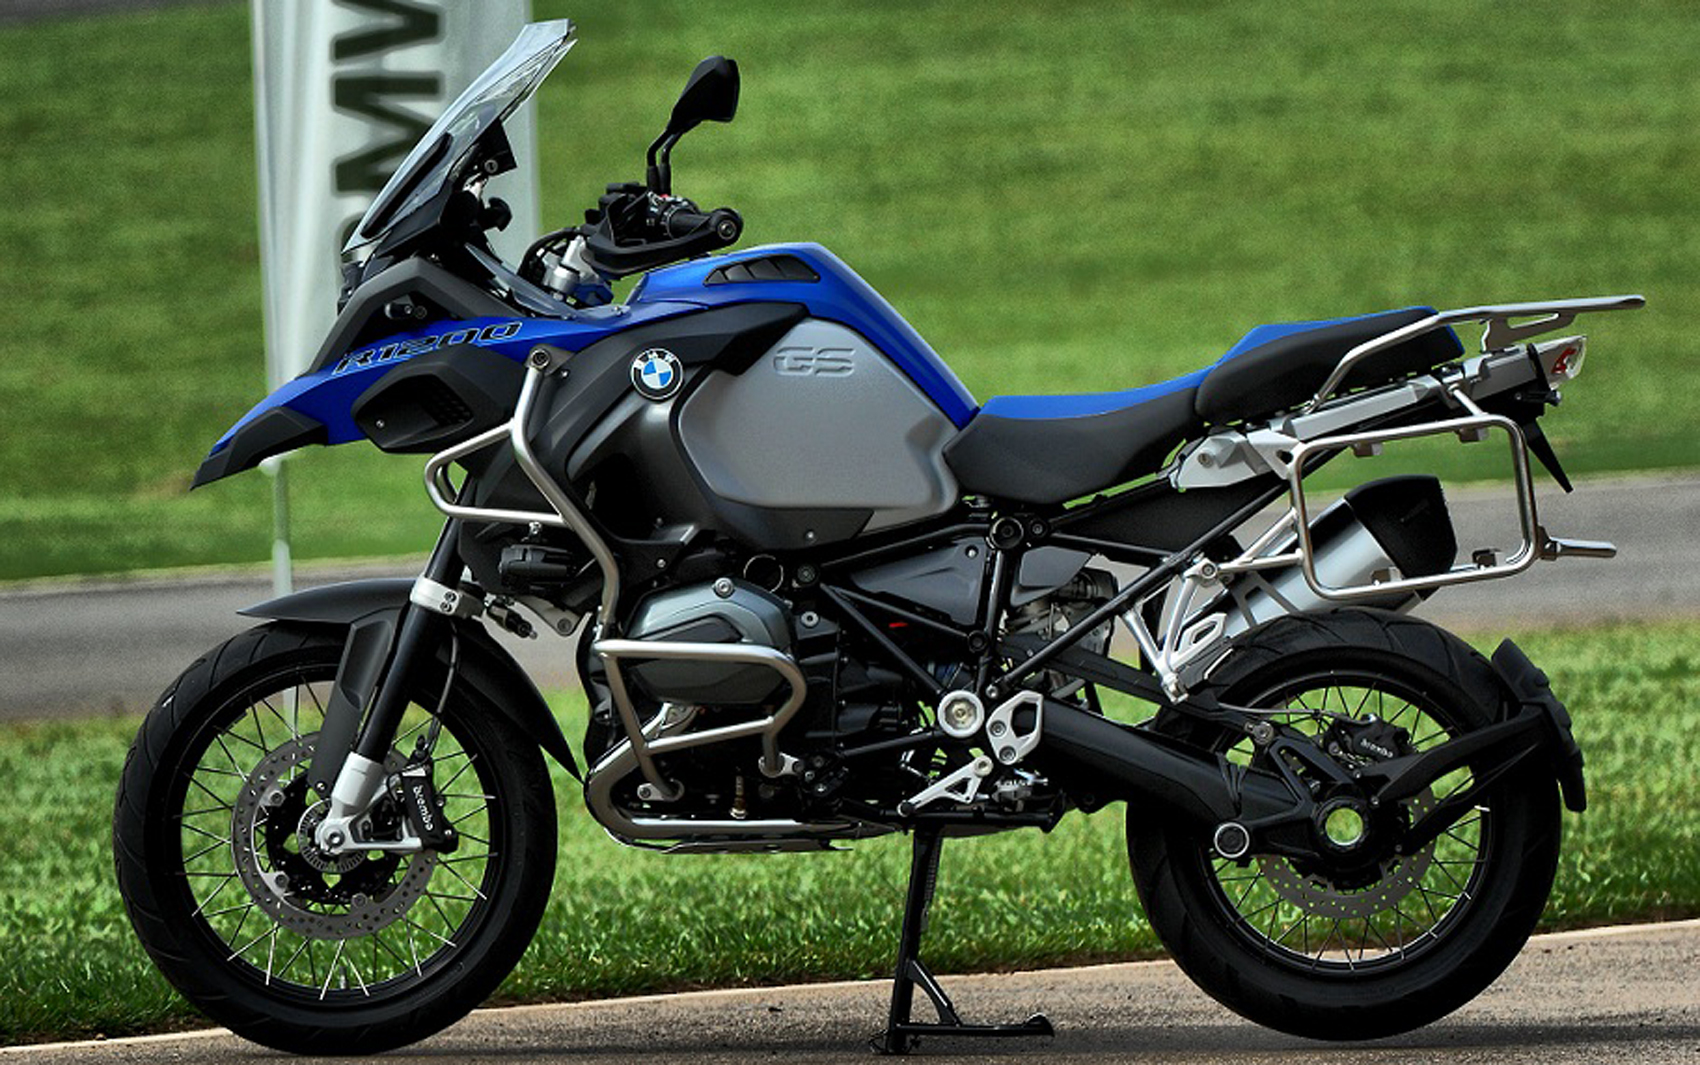 fotos bmw r 1200 gs adventure fotos em motos g1. Black Bedroom Furniture Sets. Home Design Ideas